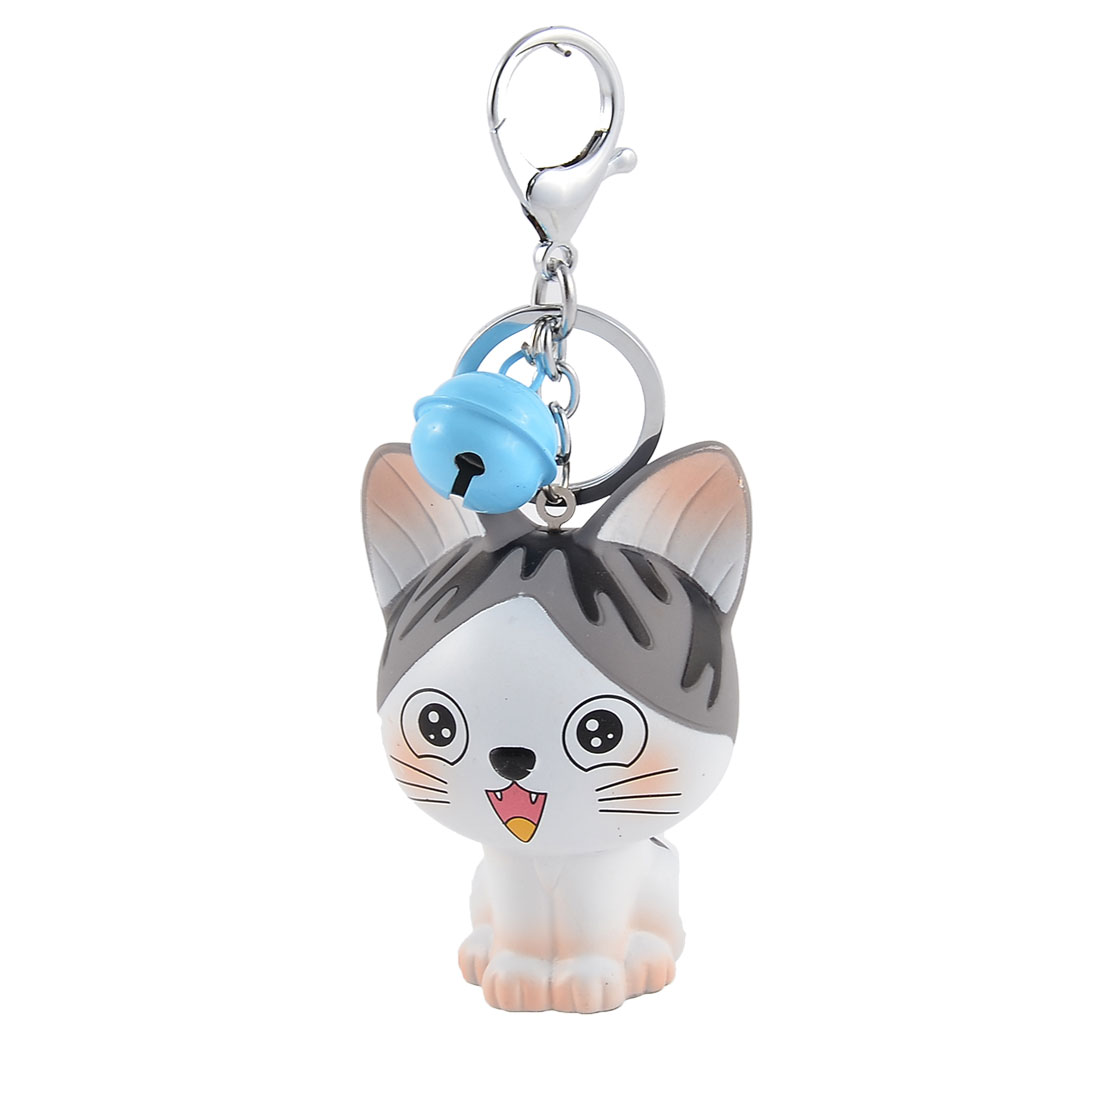 Wallet Bags Cat Shaped Pendant Ornament Keychain Key Ring Keyring Gray White